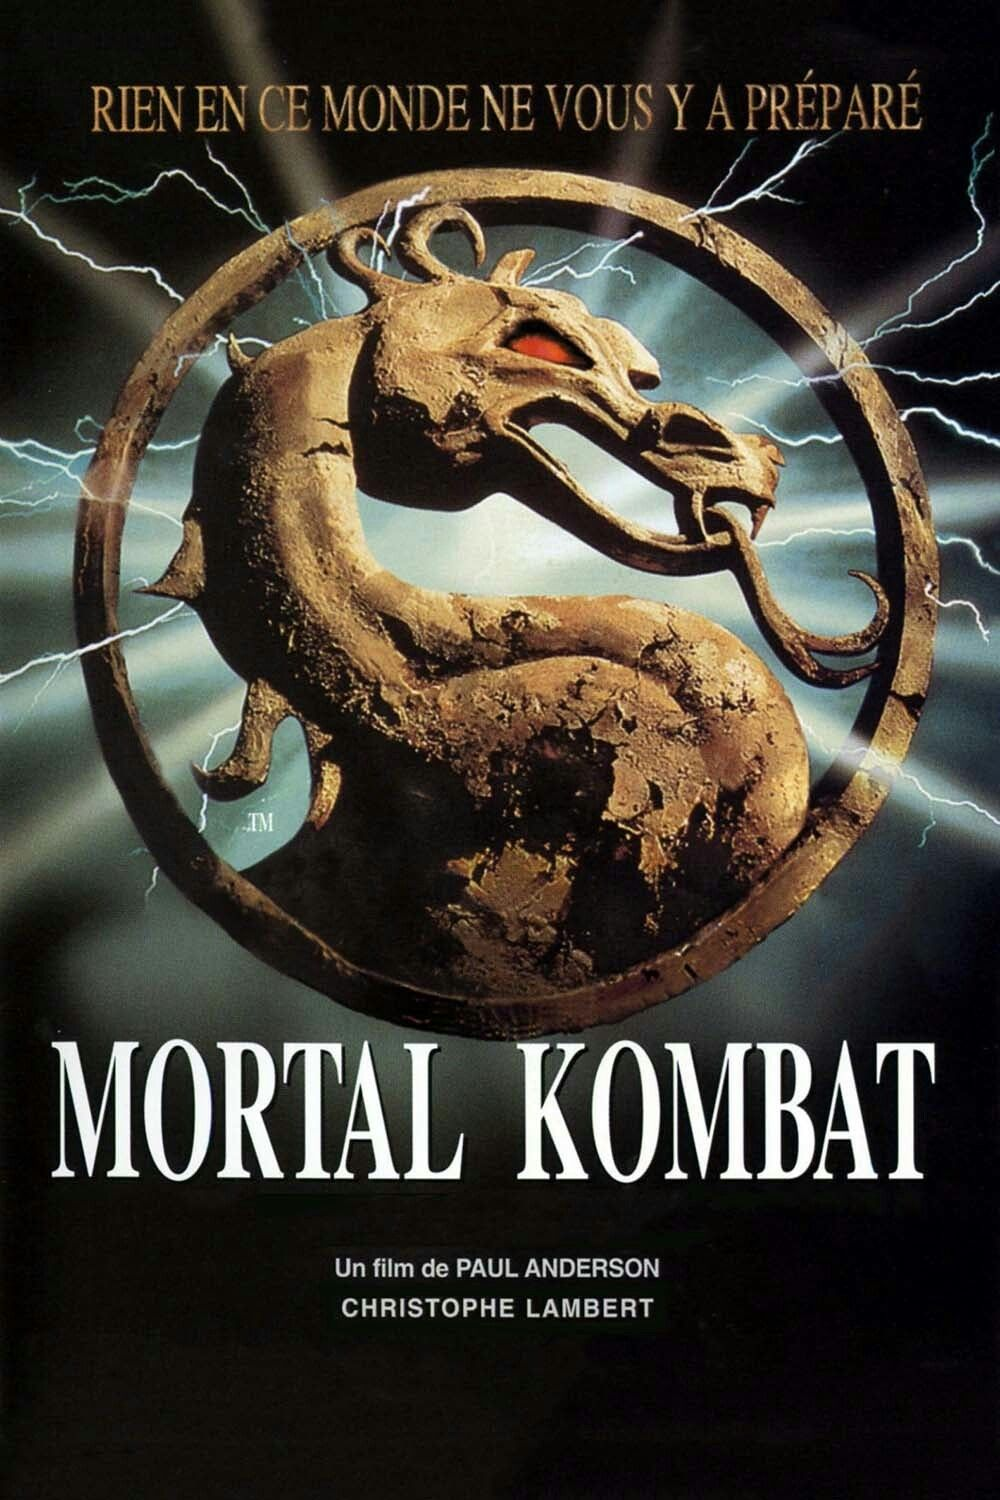 Mortal Kombat Movie Poster Fantastic Movie Posters Scifi Movie Posters Horror Movie Posters Action Movie Posters Drama Mov Noites De Cinema Filmes Hd 1080p